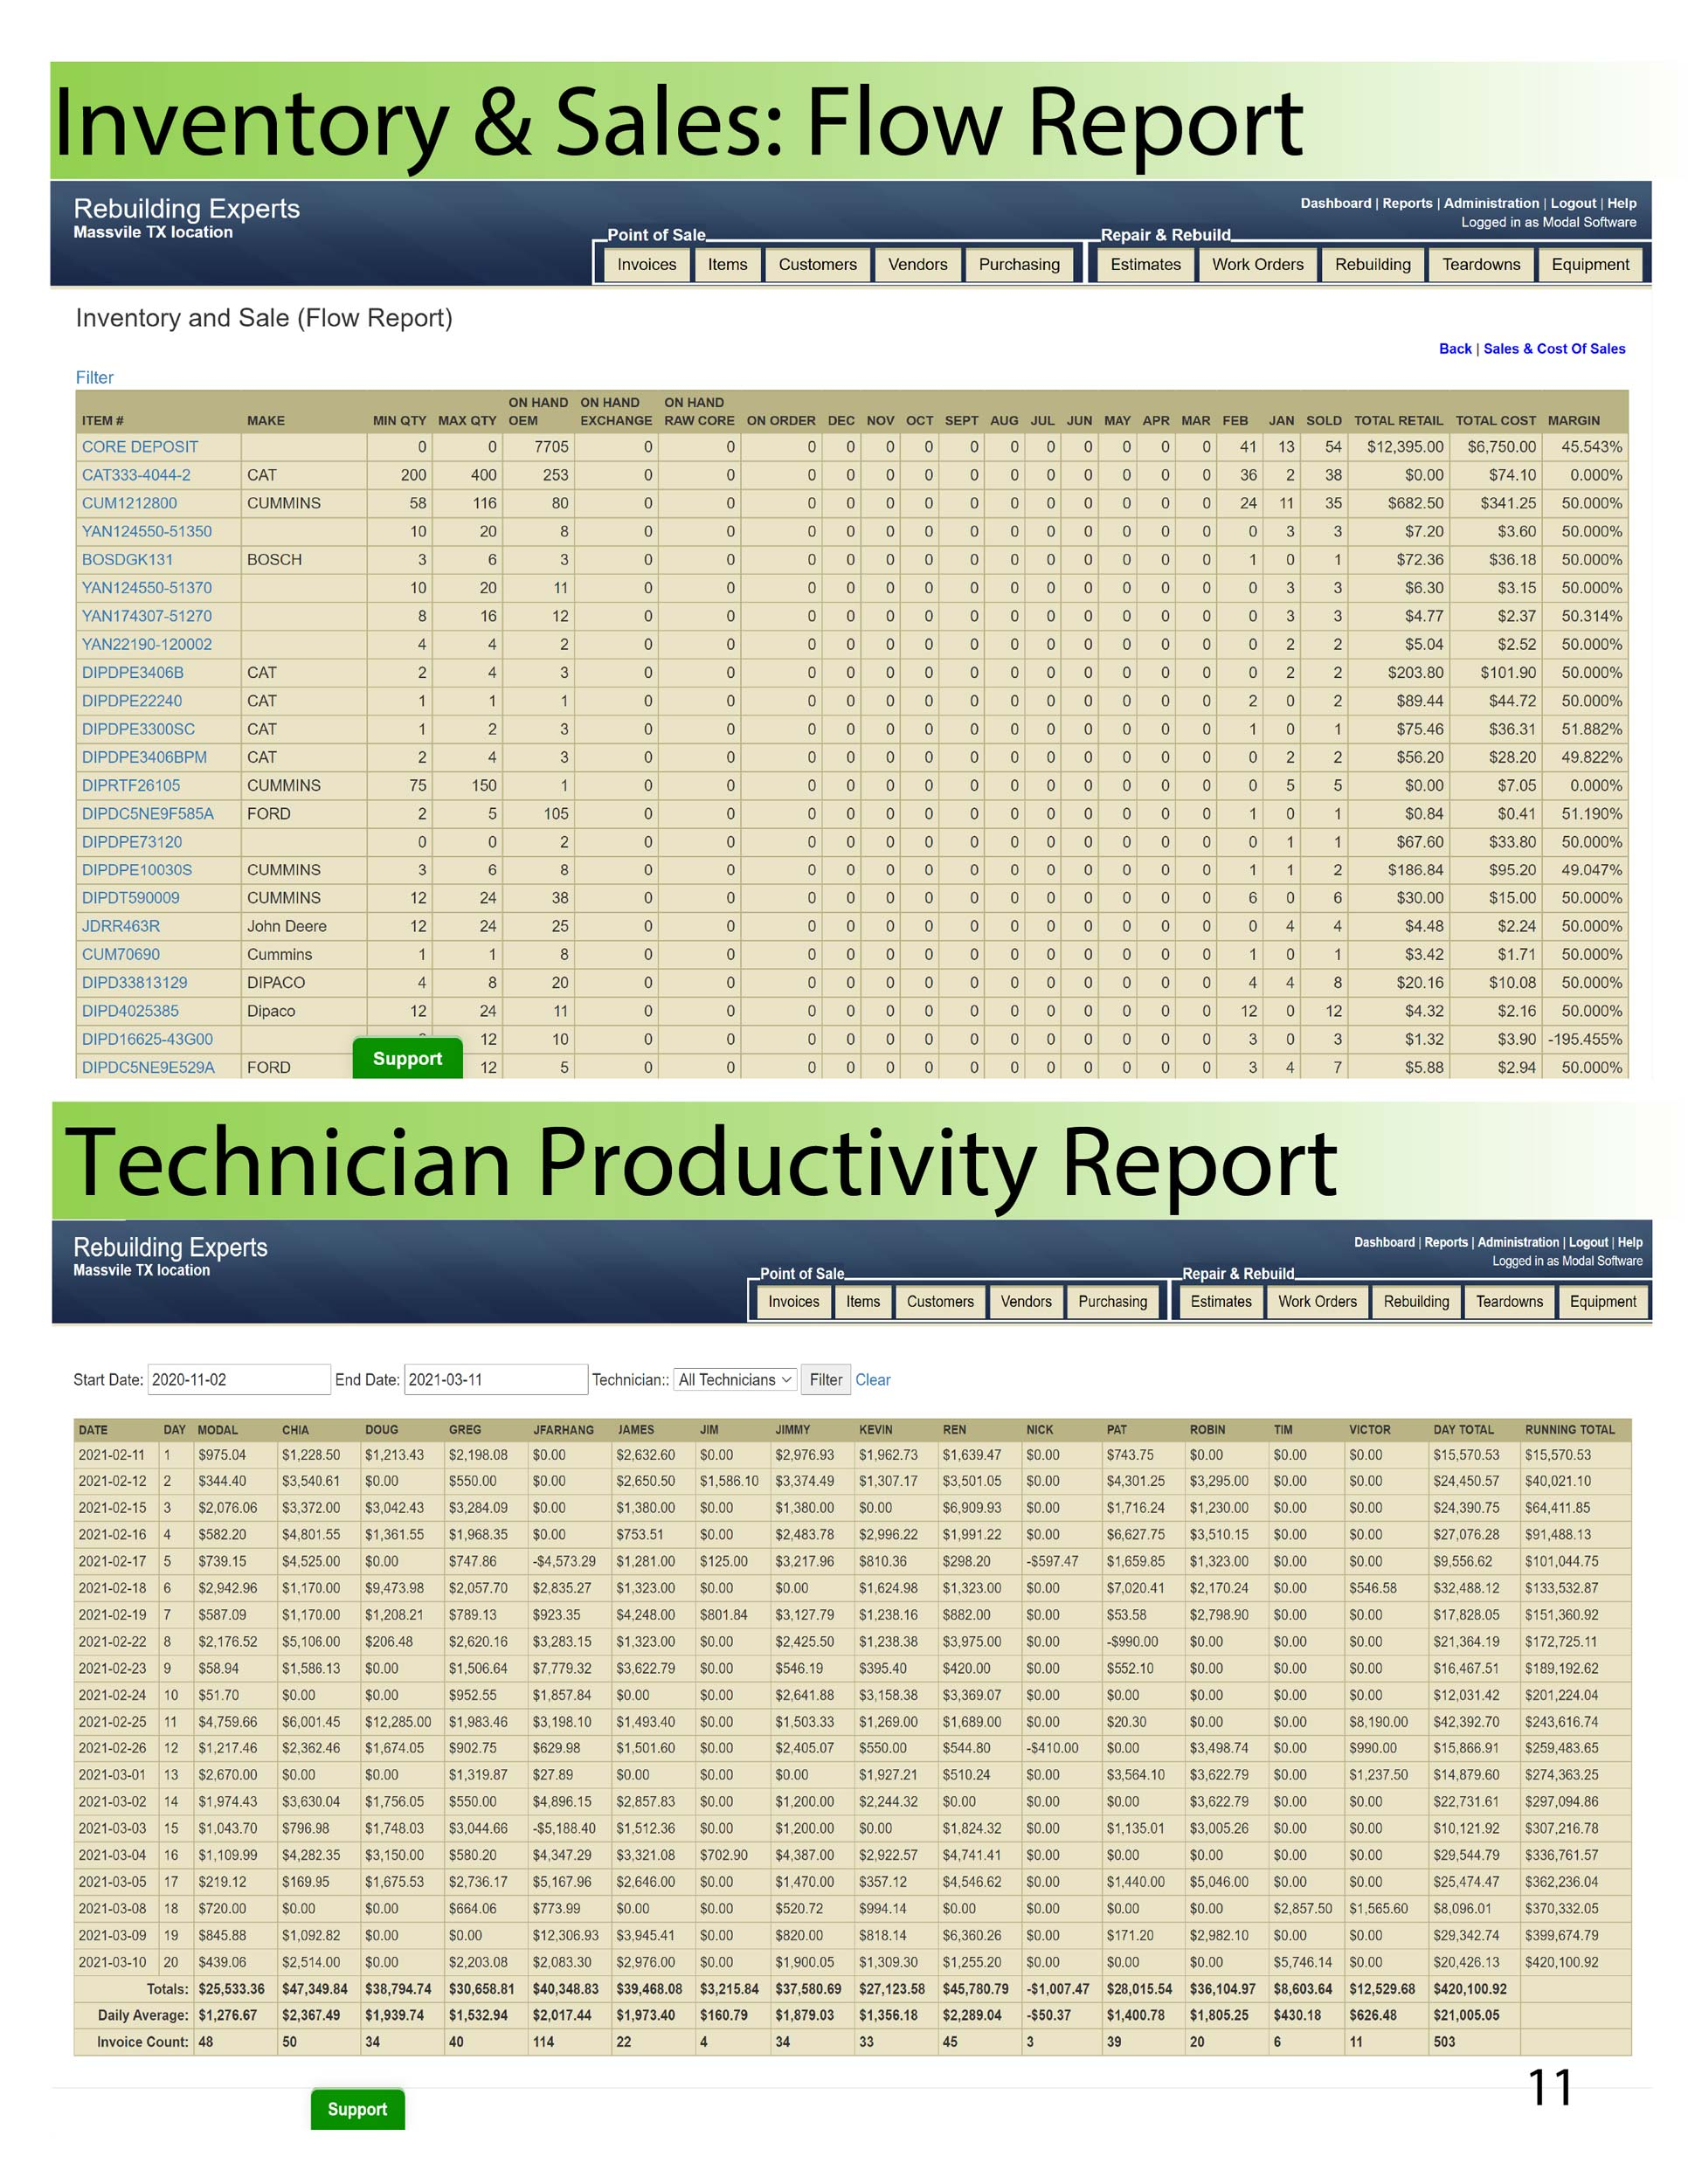 Actionrev Flow Report Technician Productivity Report